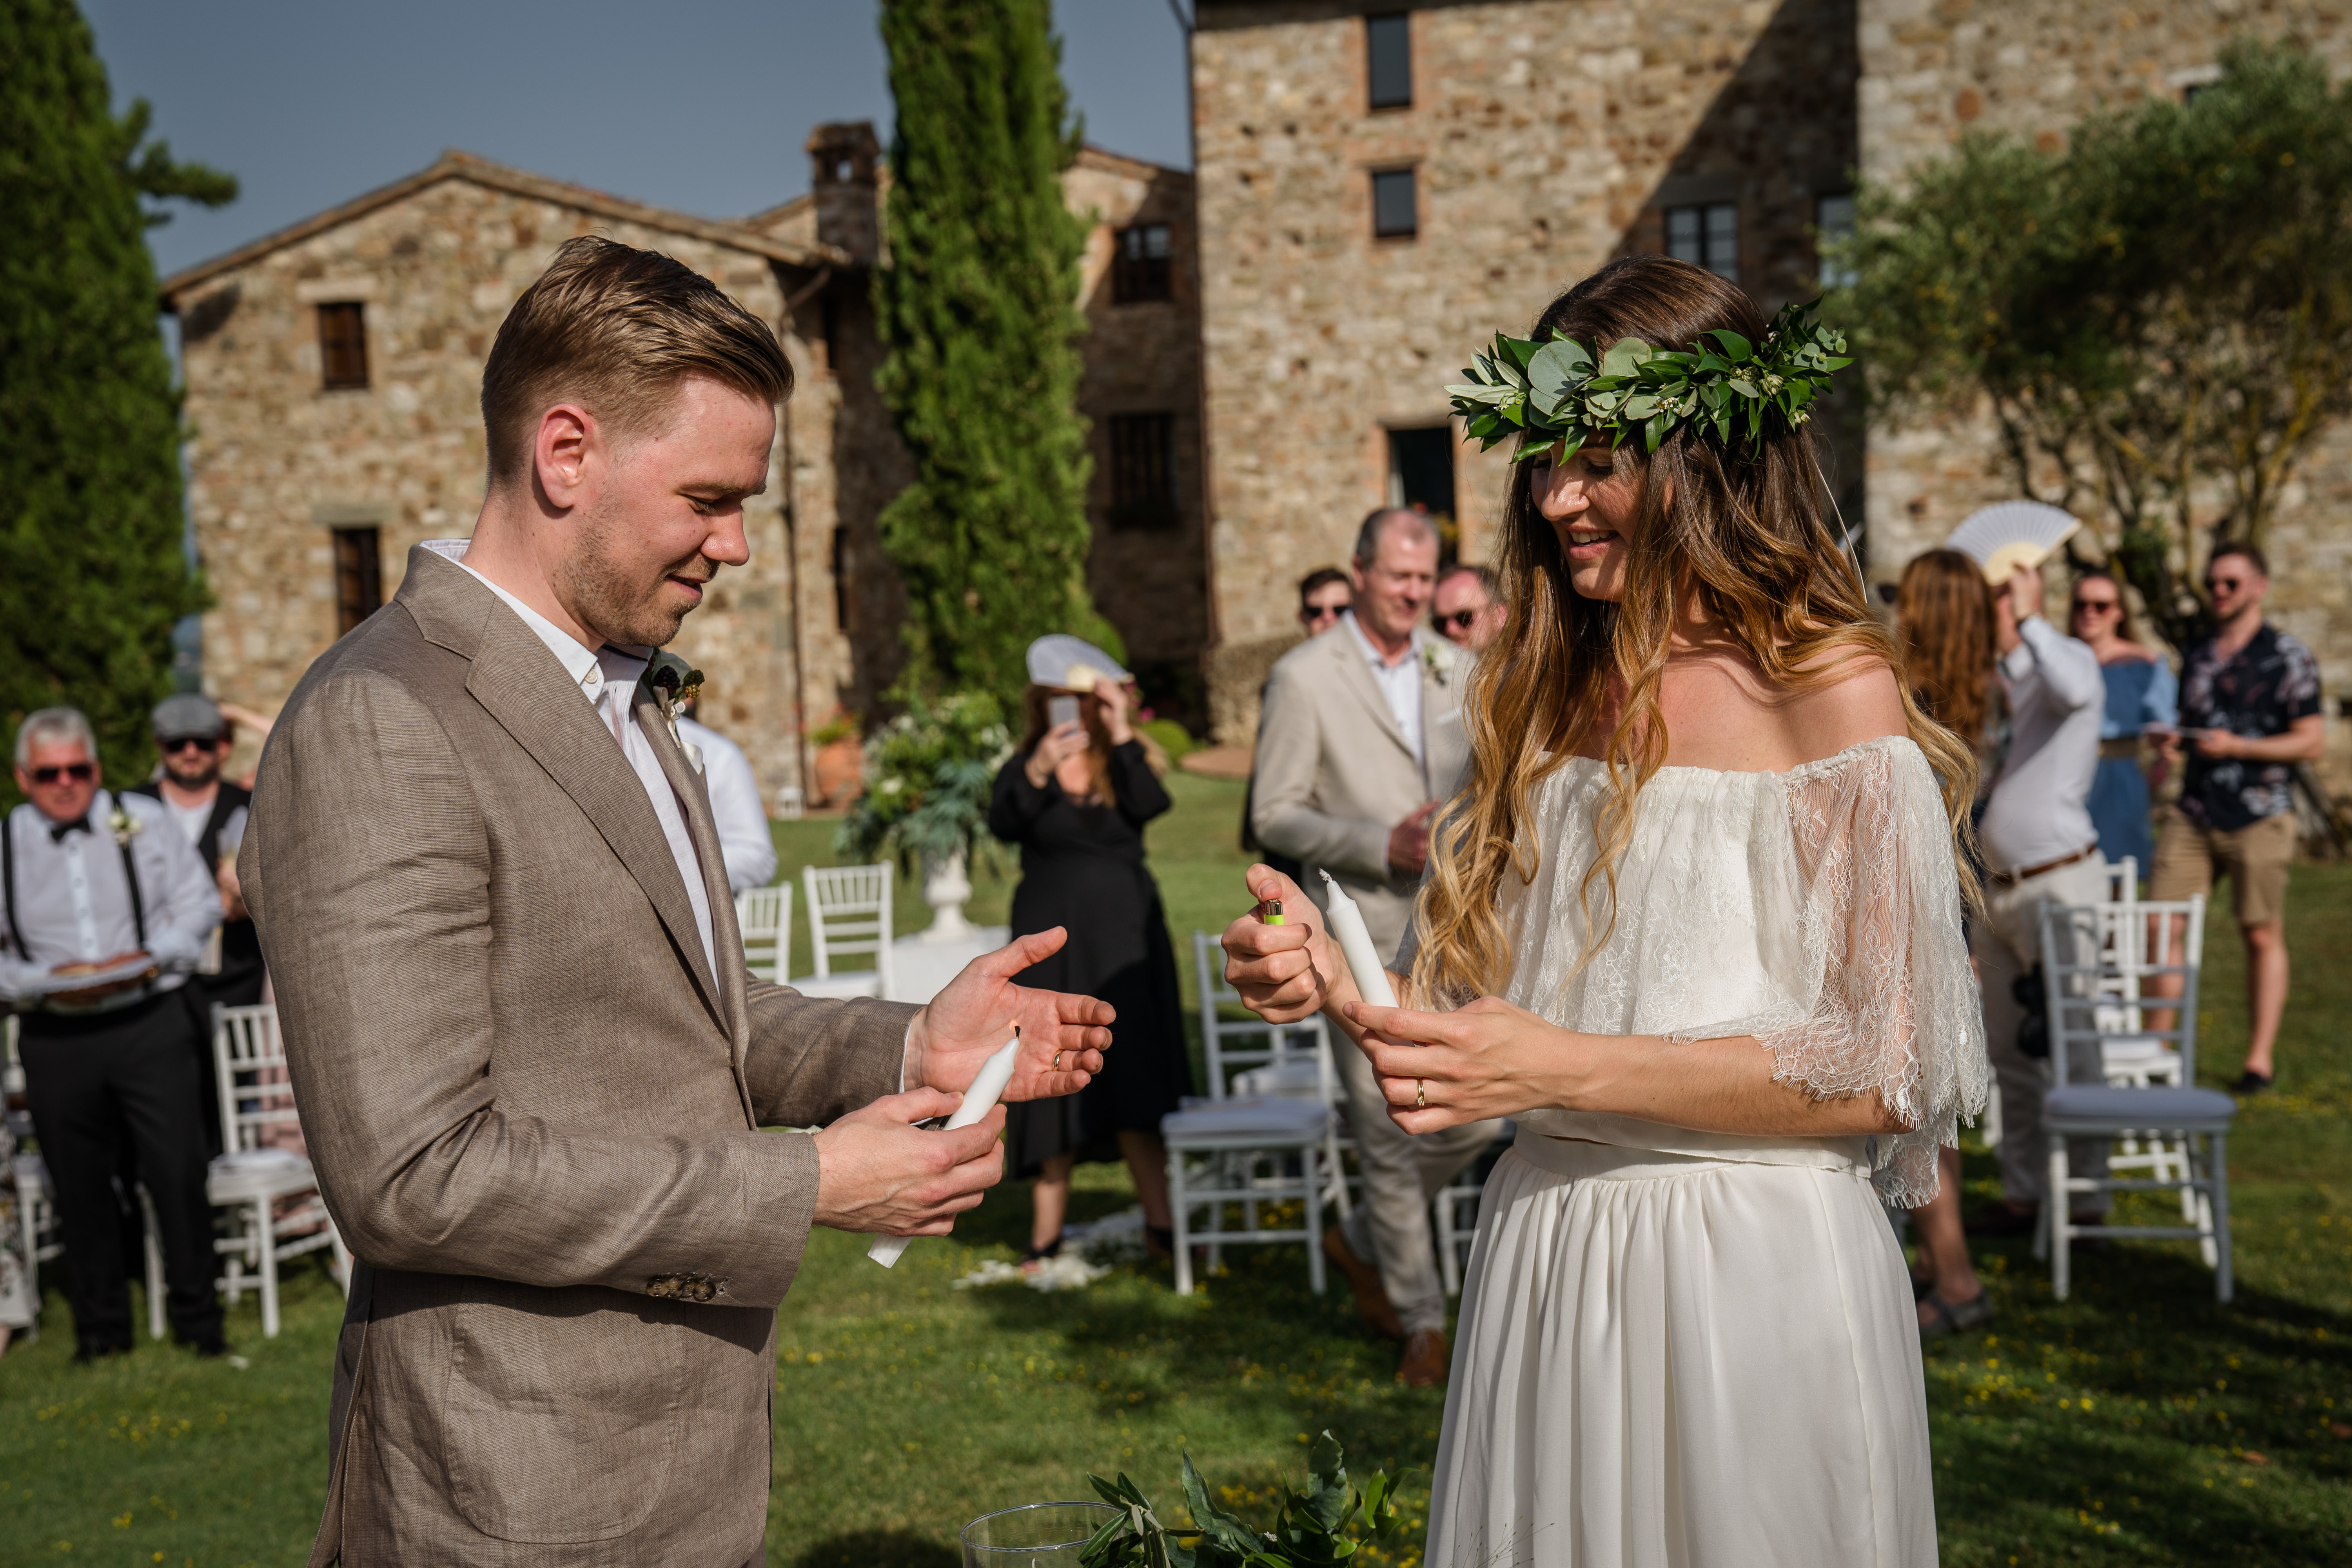 Wedding Photographer Umbria: Duccio Argentini